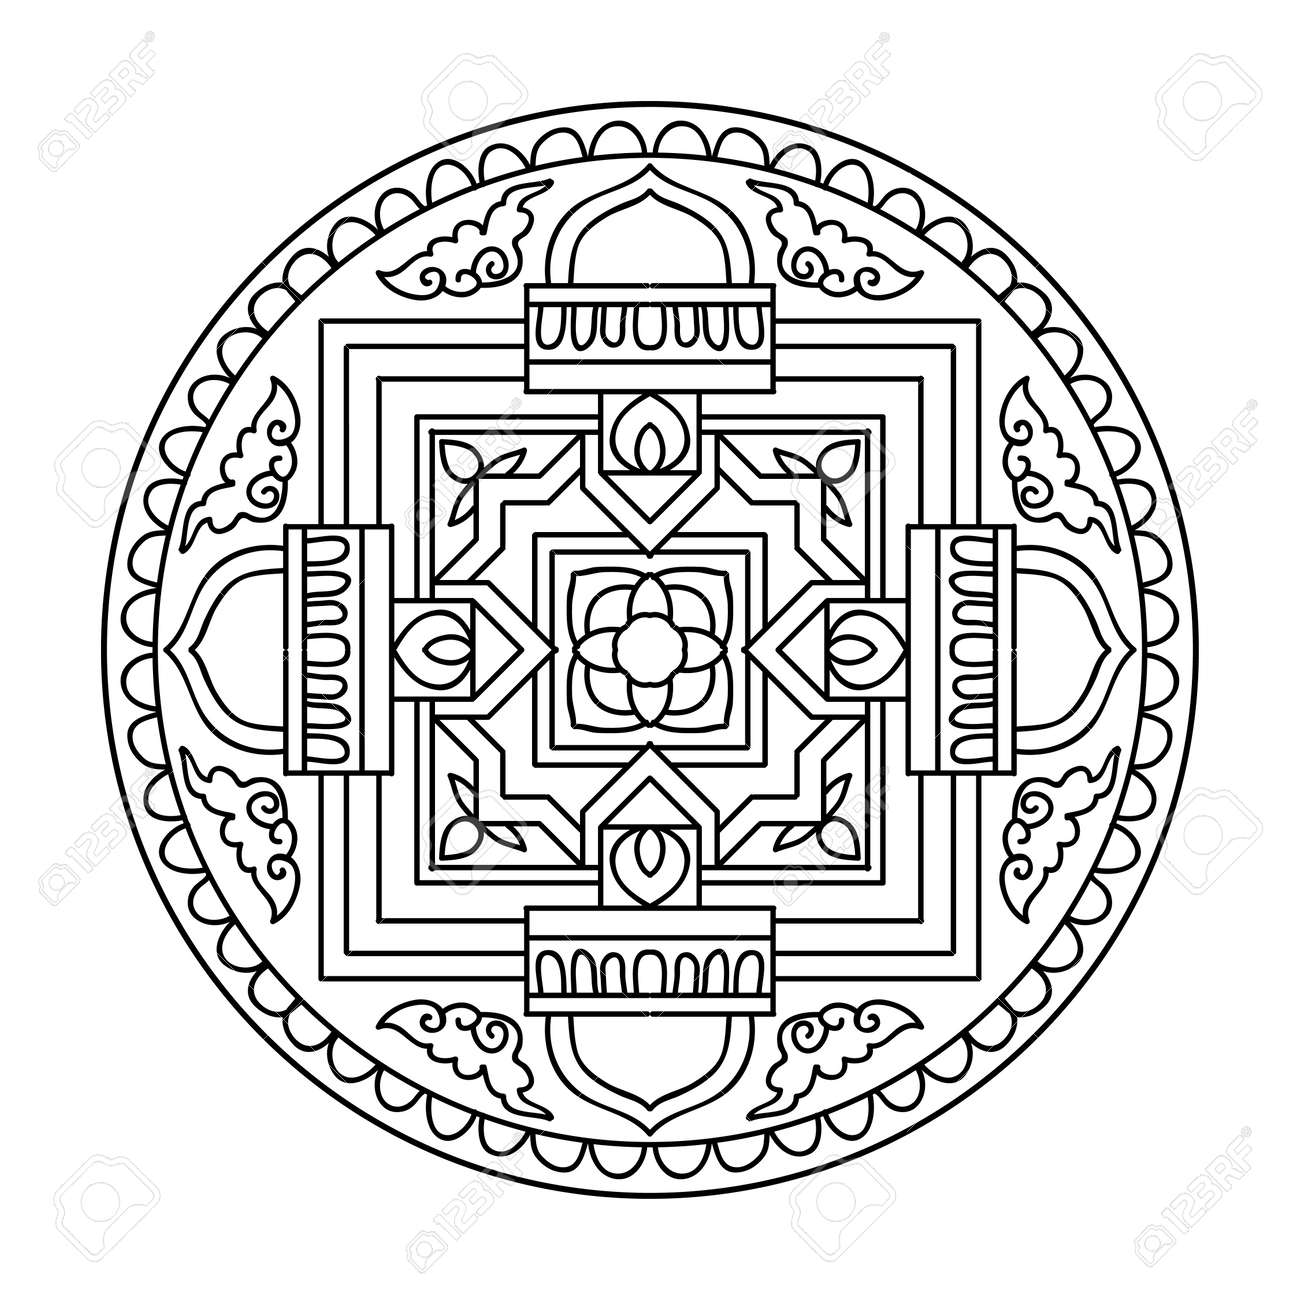 Tibet Ethnic Mandalas And Elements Outline Drawing Vector Illustration Coloring Book For Adult